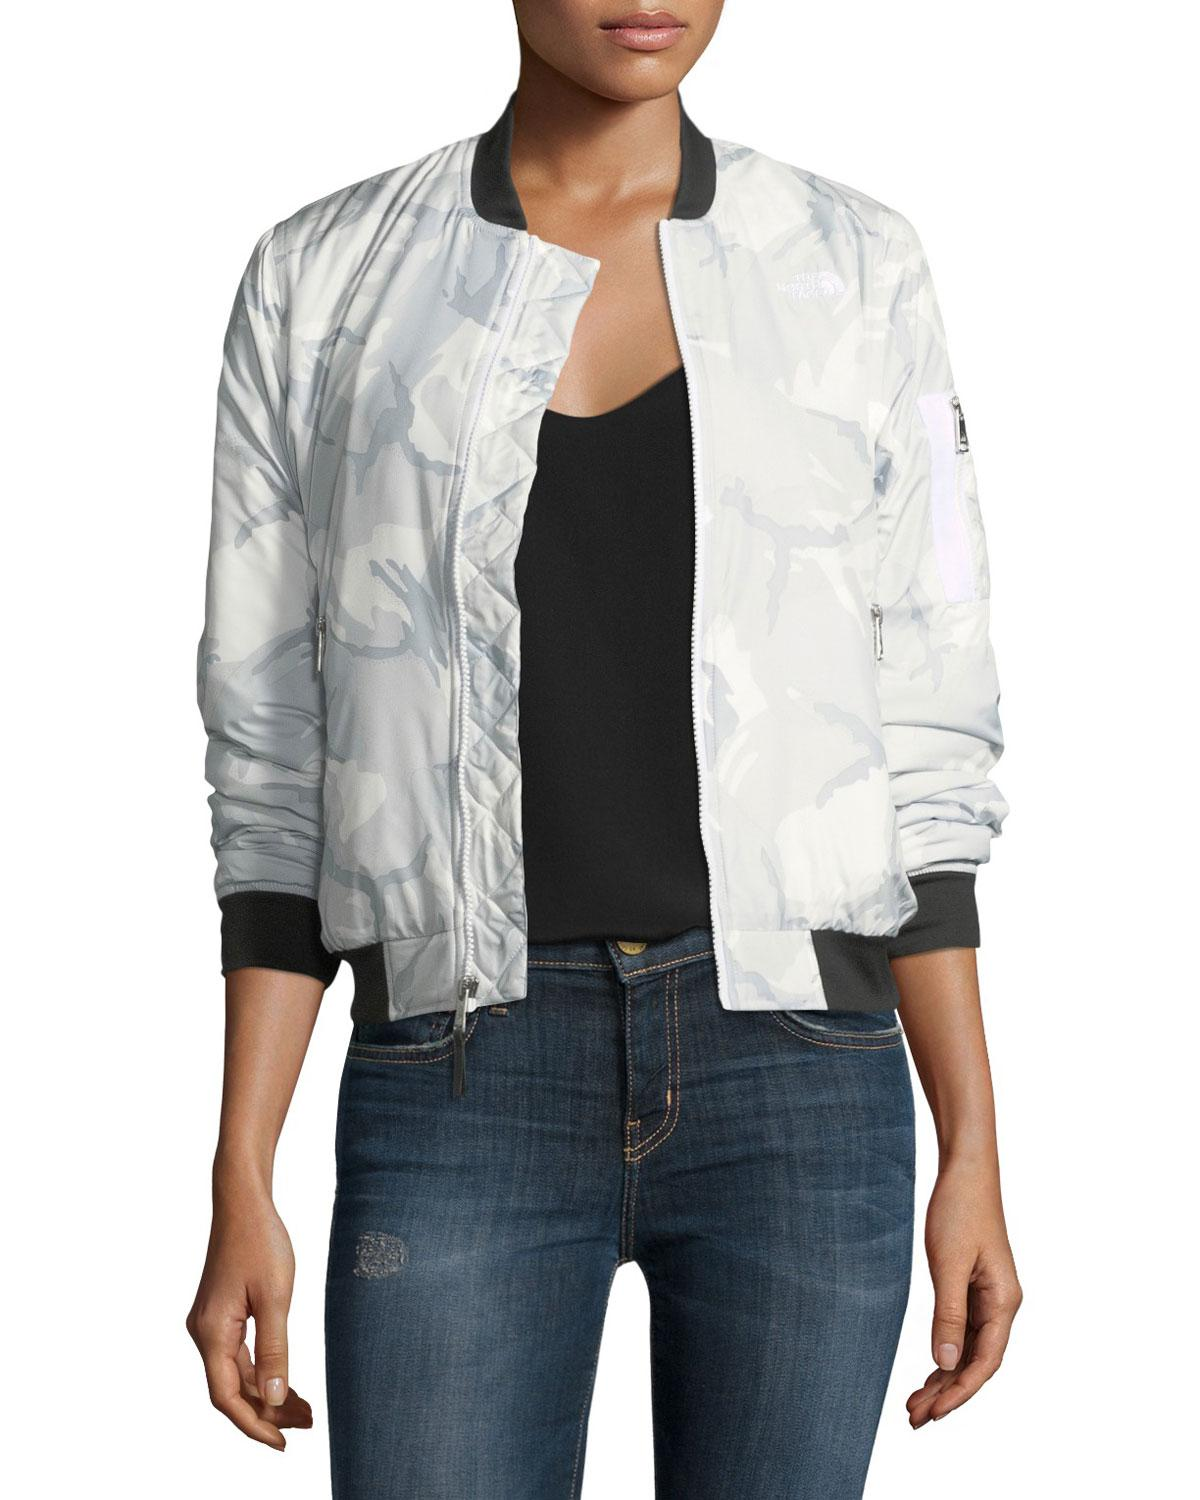 Lyst The North Face Barstol Insulated Bomber Jacket in White